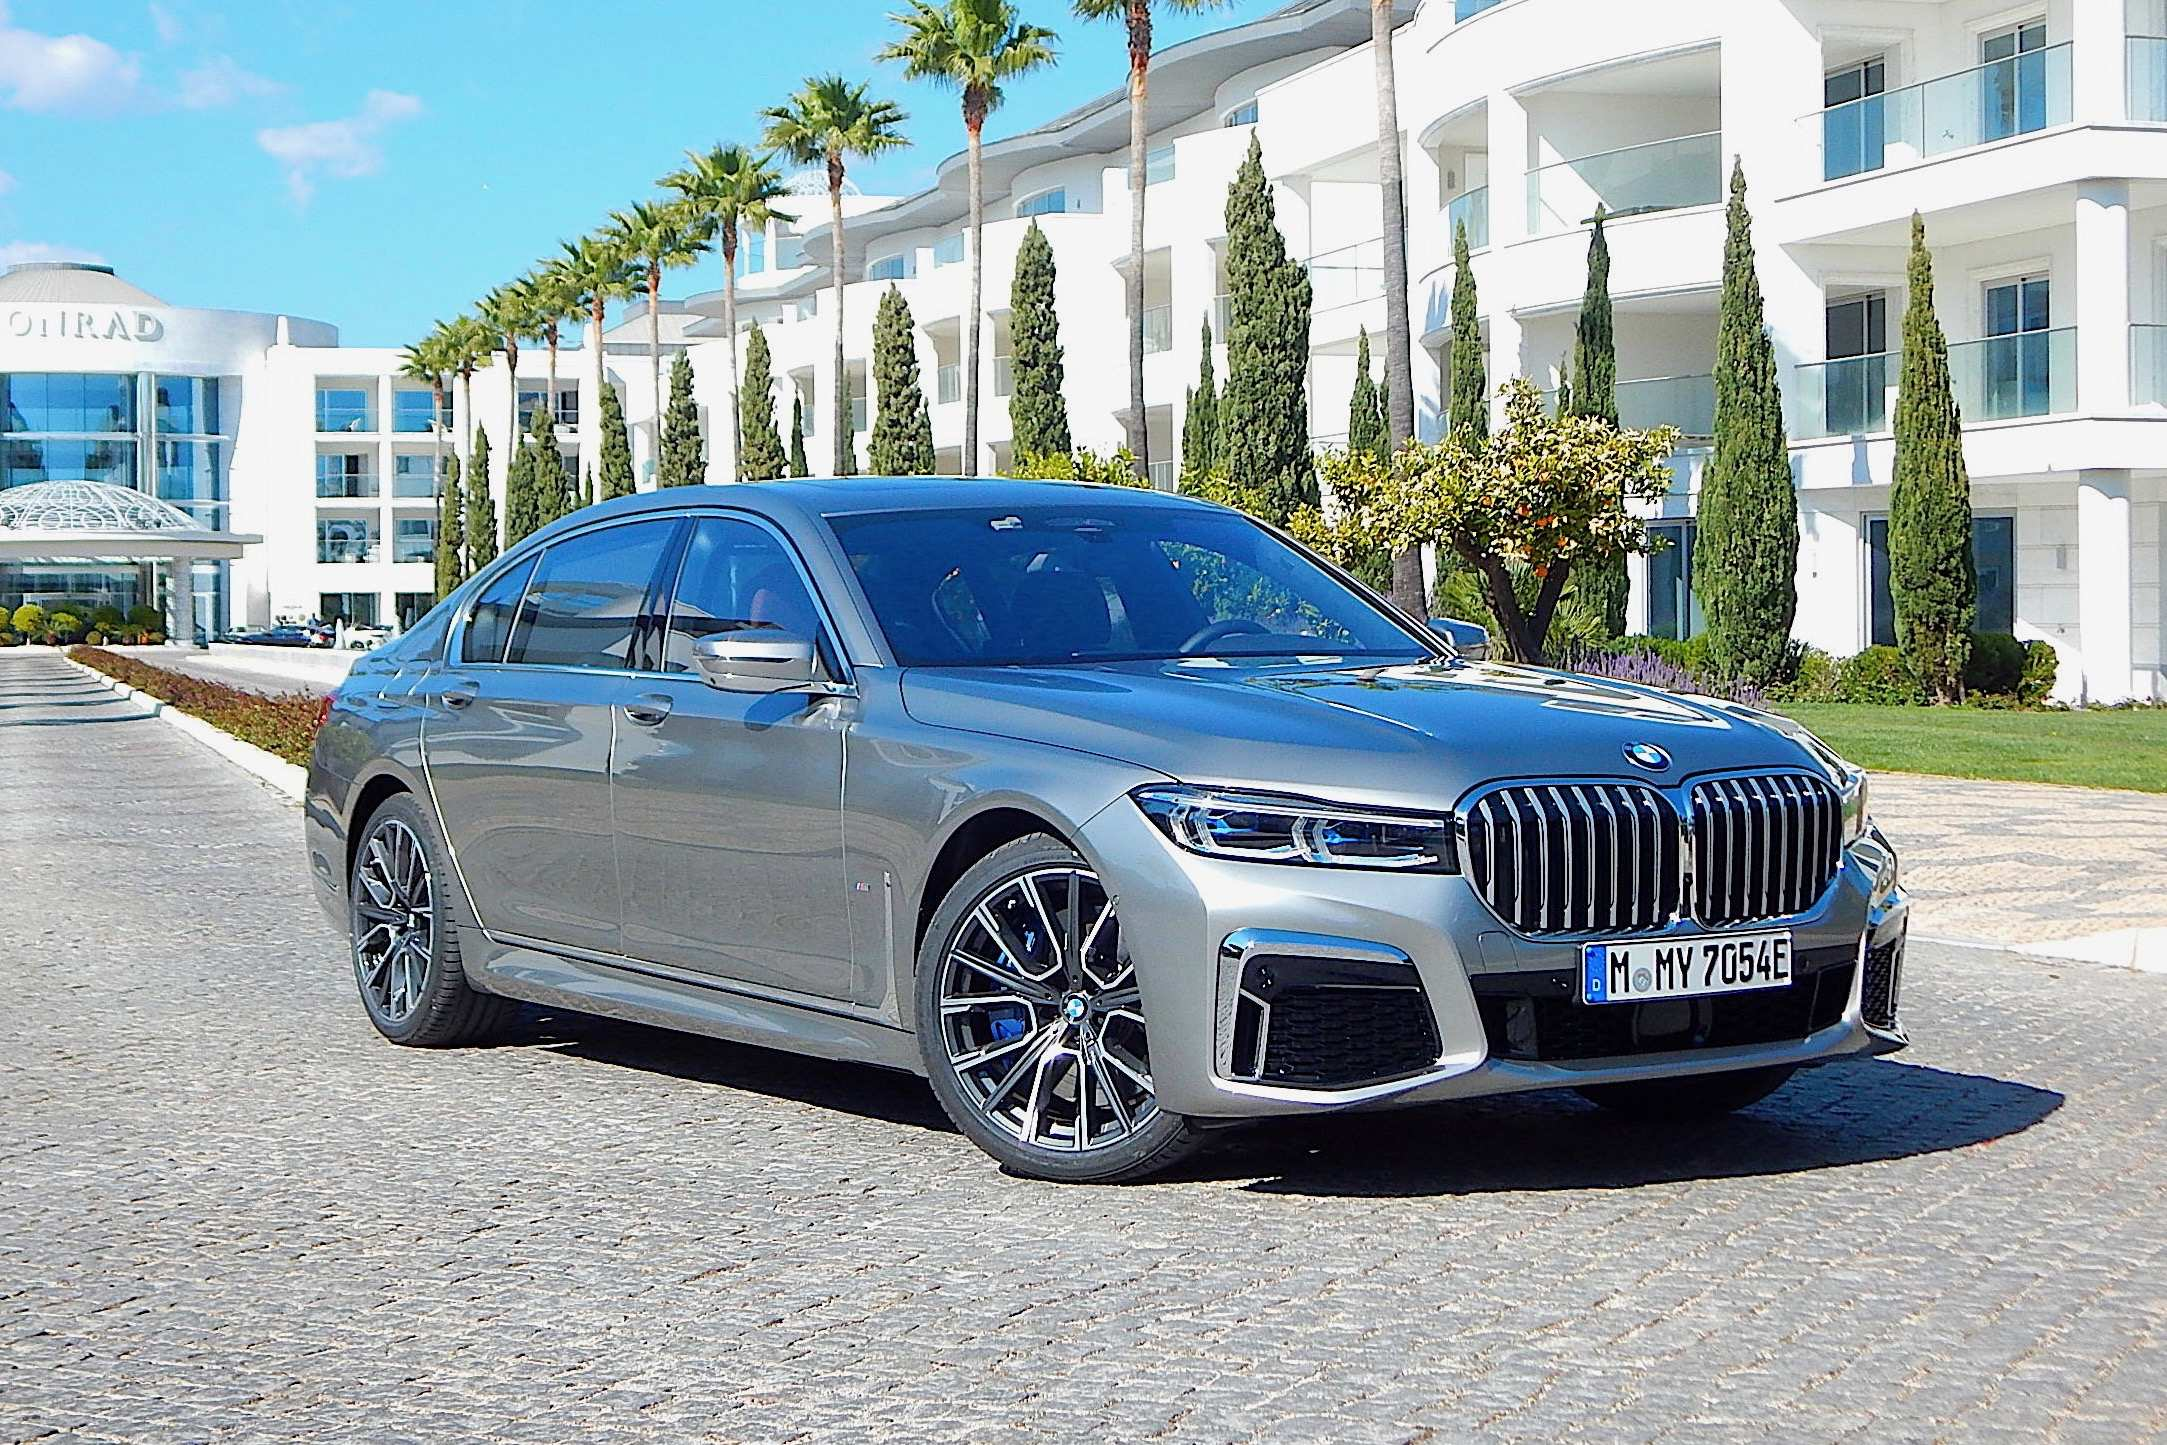 39 Best Review Bmw Alpina B7 2020 New Concept with Bmw Alpina B7 2020